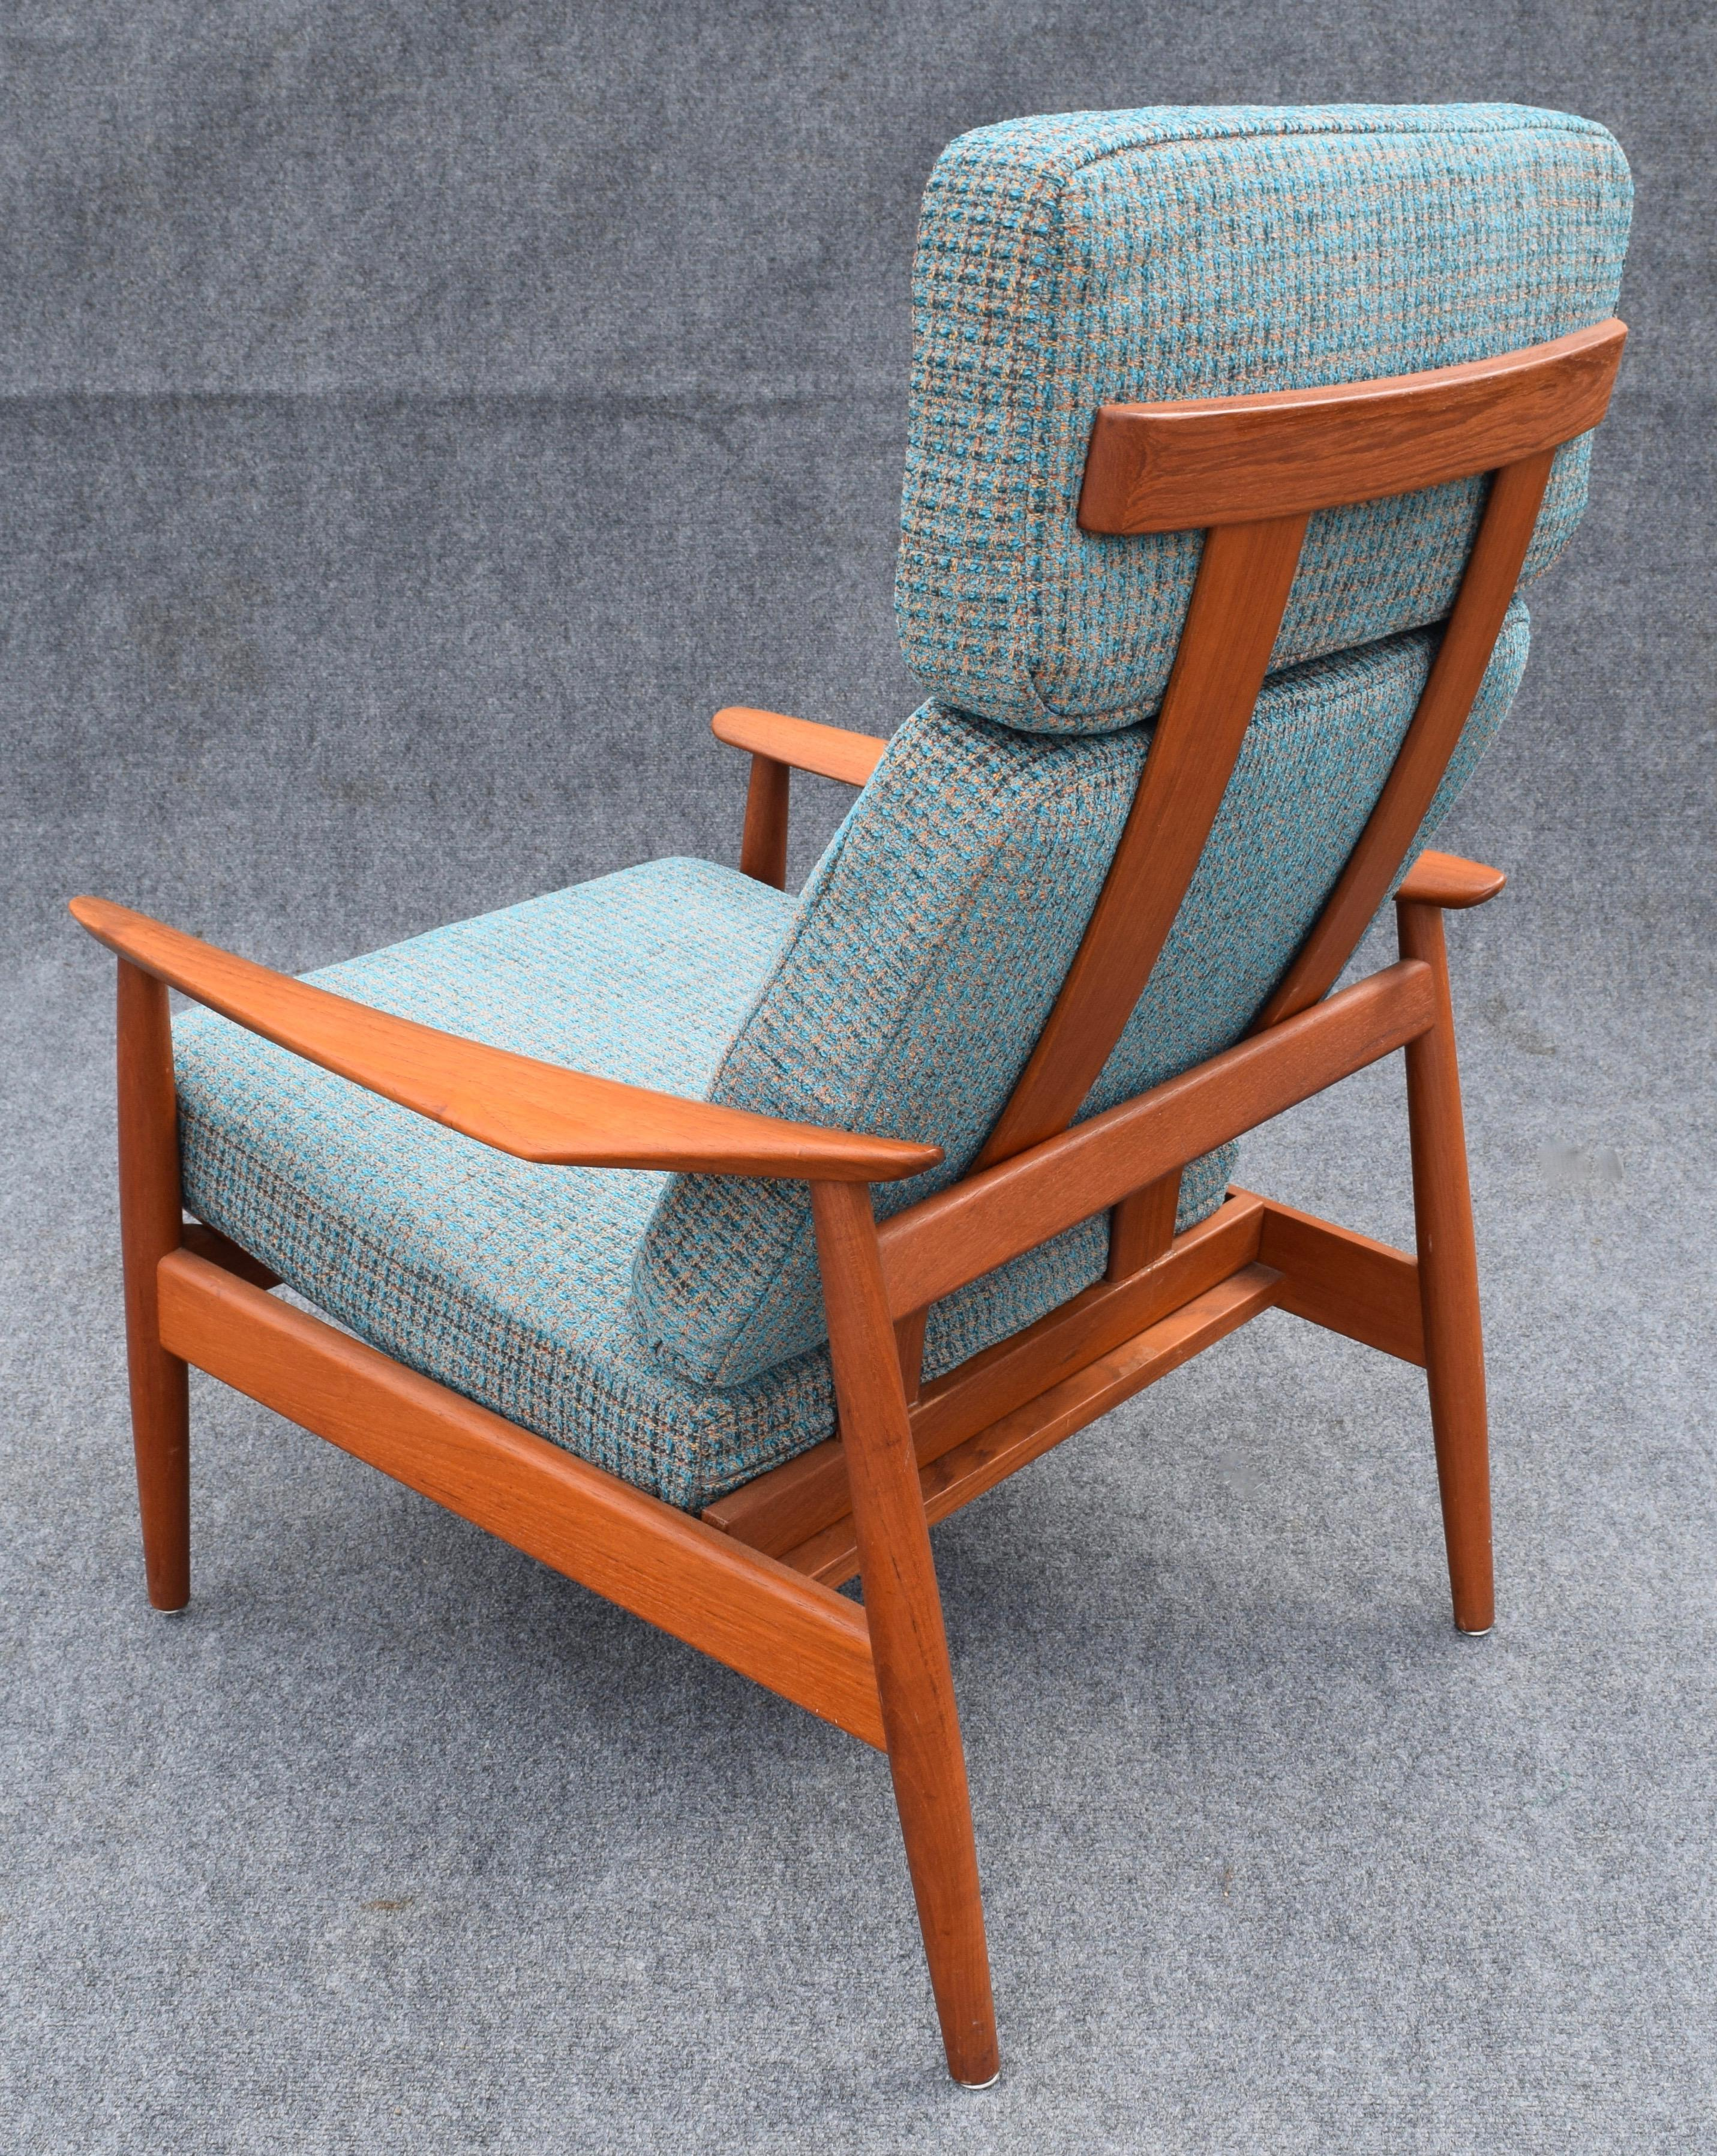 Vintage Arne Vodder for Cado Danish Modern Teak Recliner Chair - Image 5 of 10  sc 1 st  Chairish & Vintage Arne Vodder for Cado Danish Modern Teak Recliner Chair ... islam-shia.org